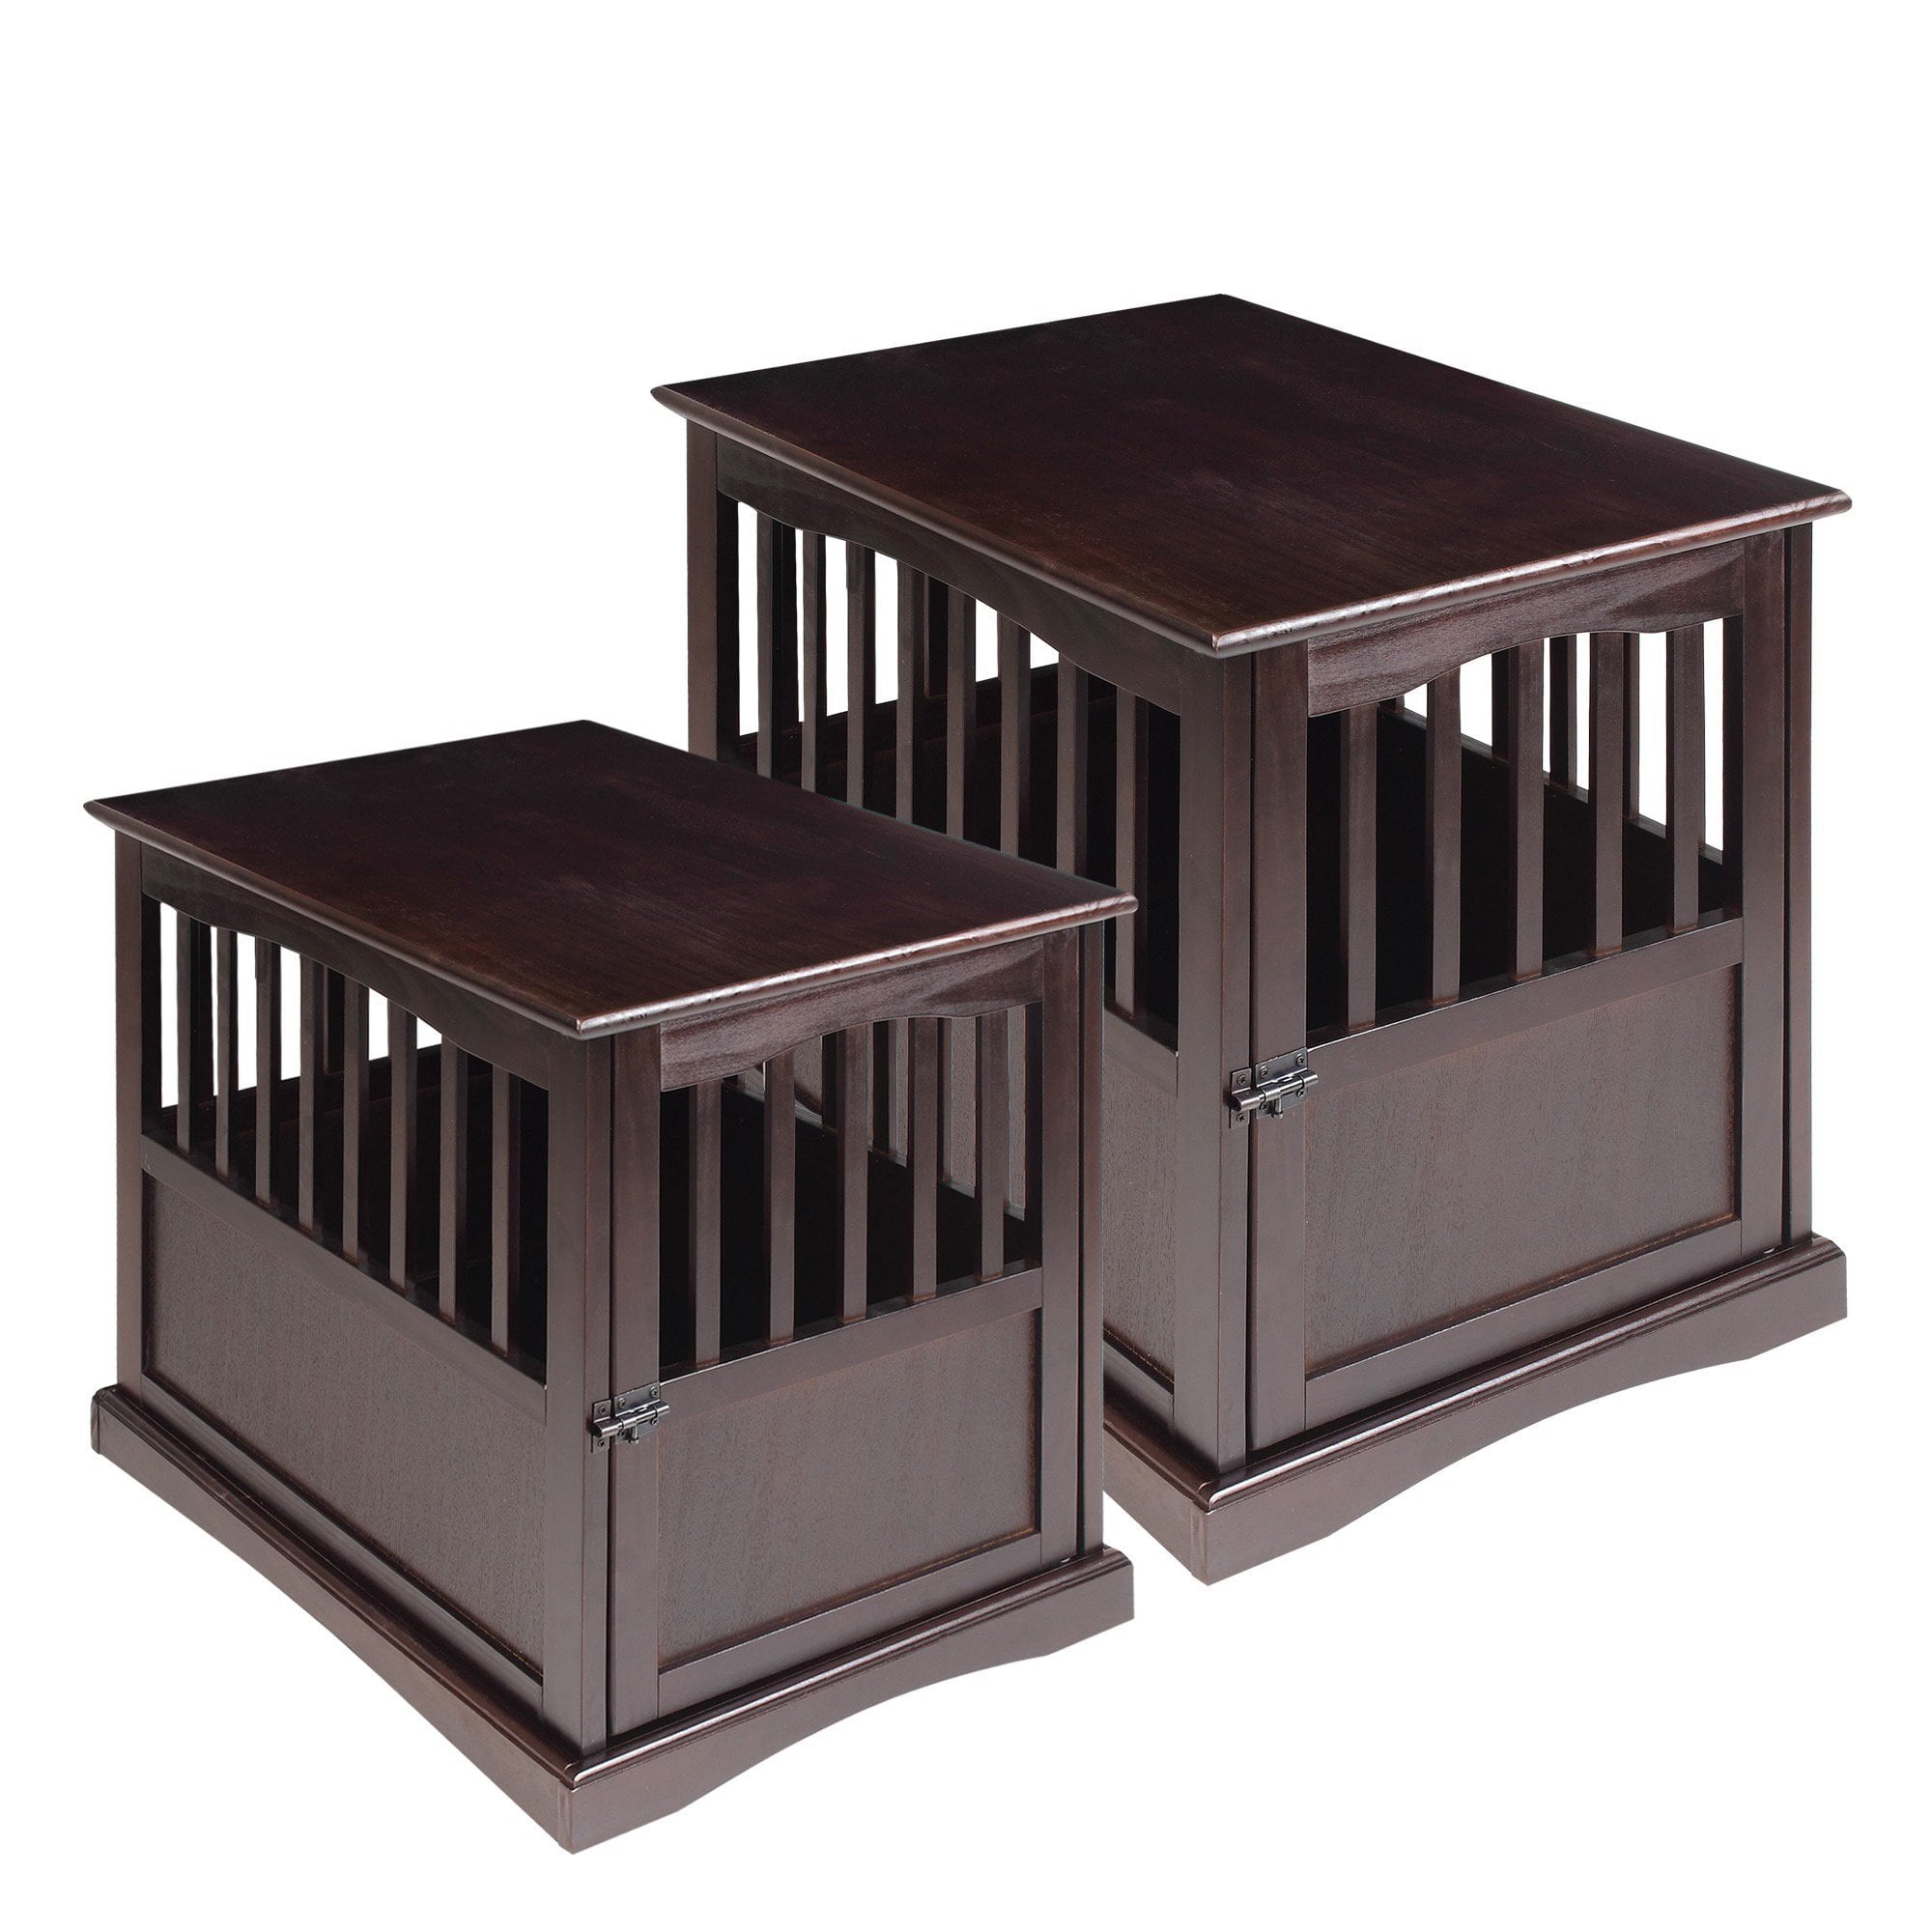 wooden pet crate end table with lockable door ships and dog wood top for coffee black metal outdoor side west elm wall art laura ashley beds small garden diy pallet plans magnolia